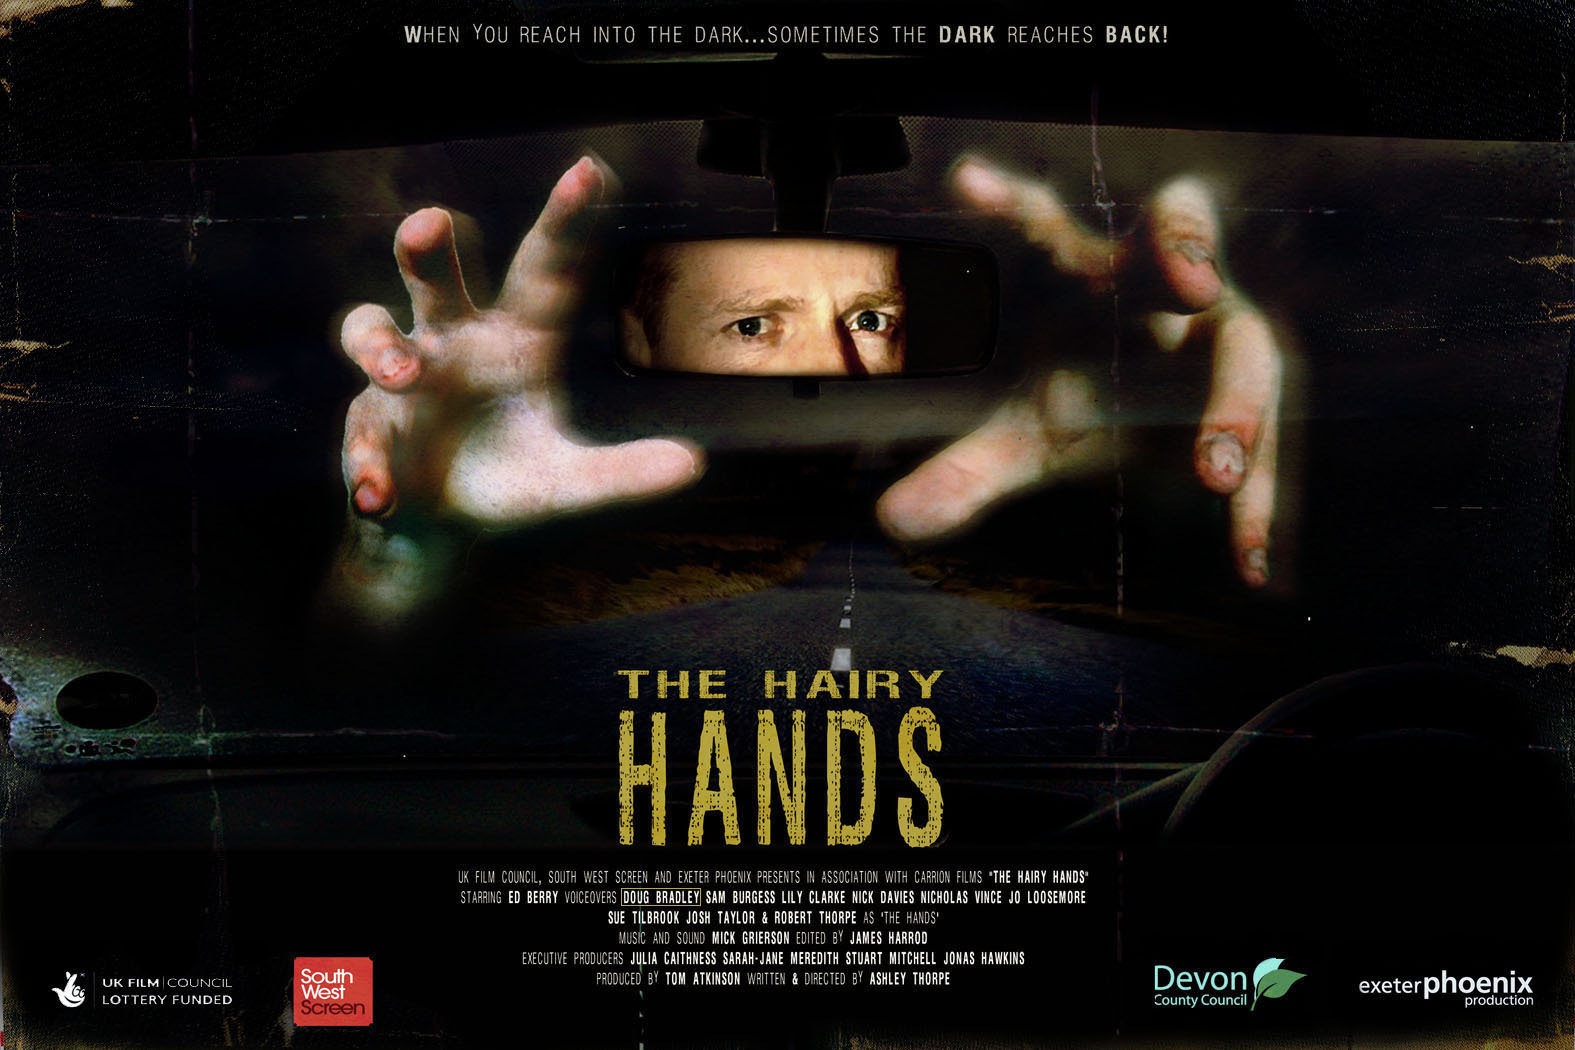 The Hairy Hands (2010)